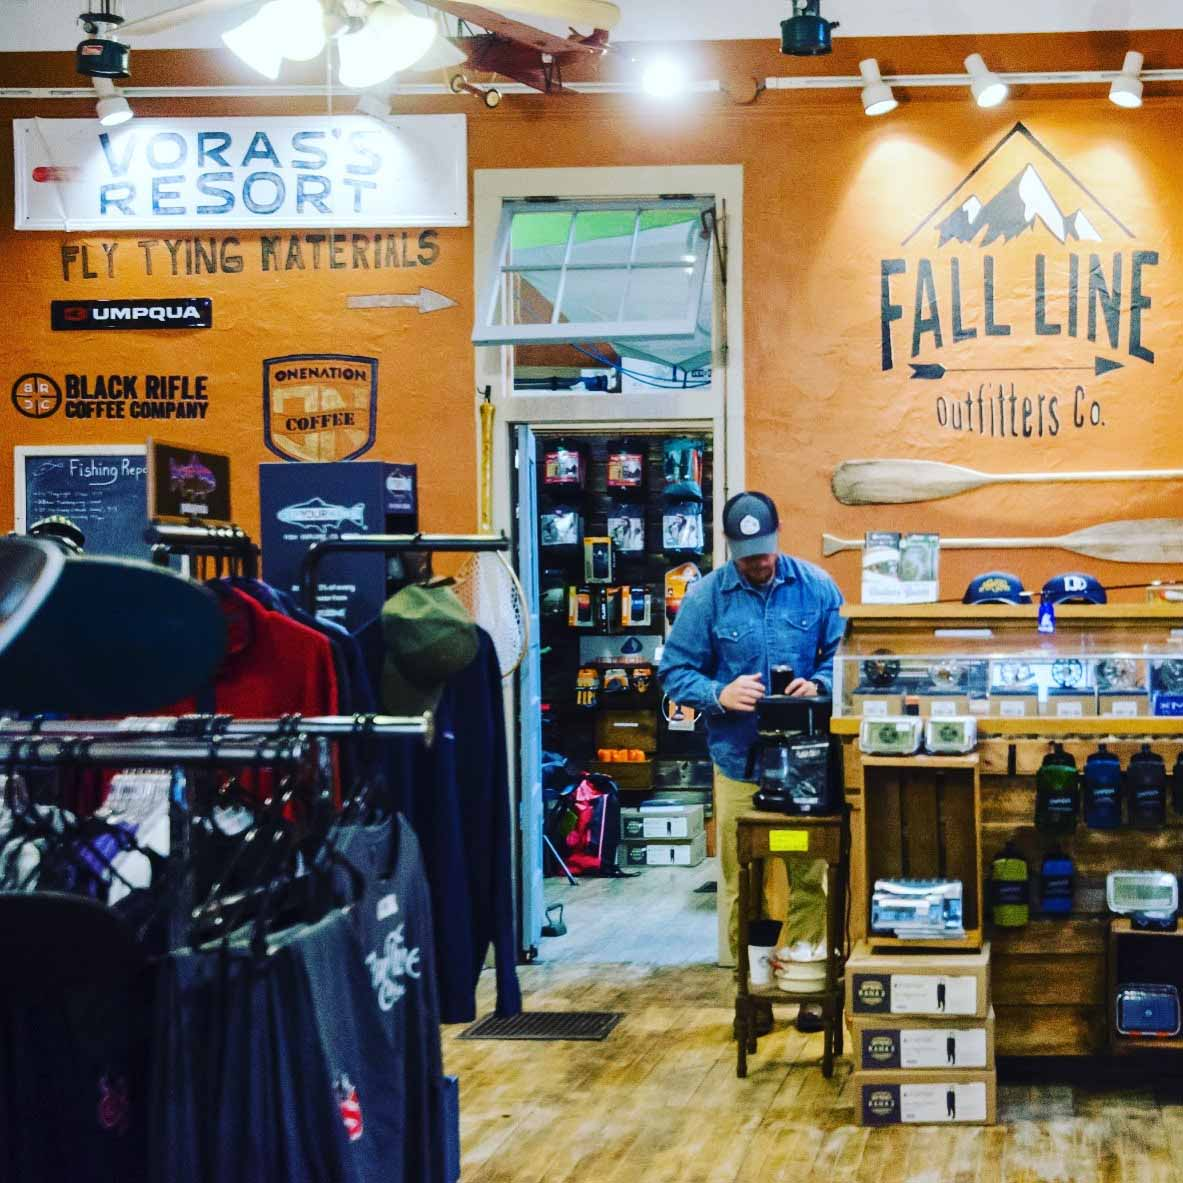 Fall Line Outfitters